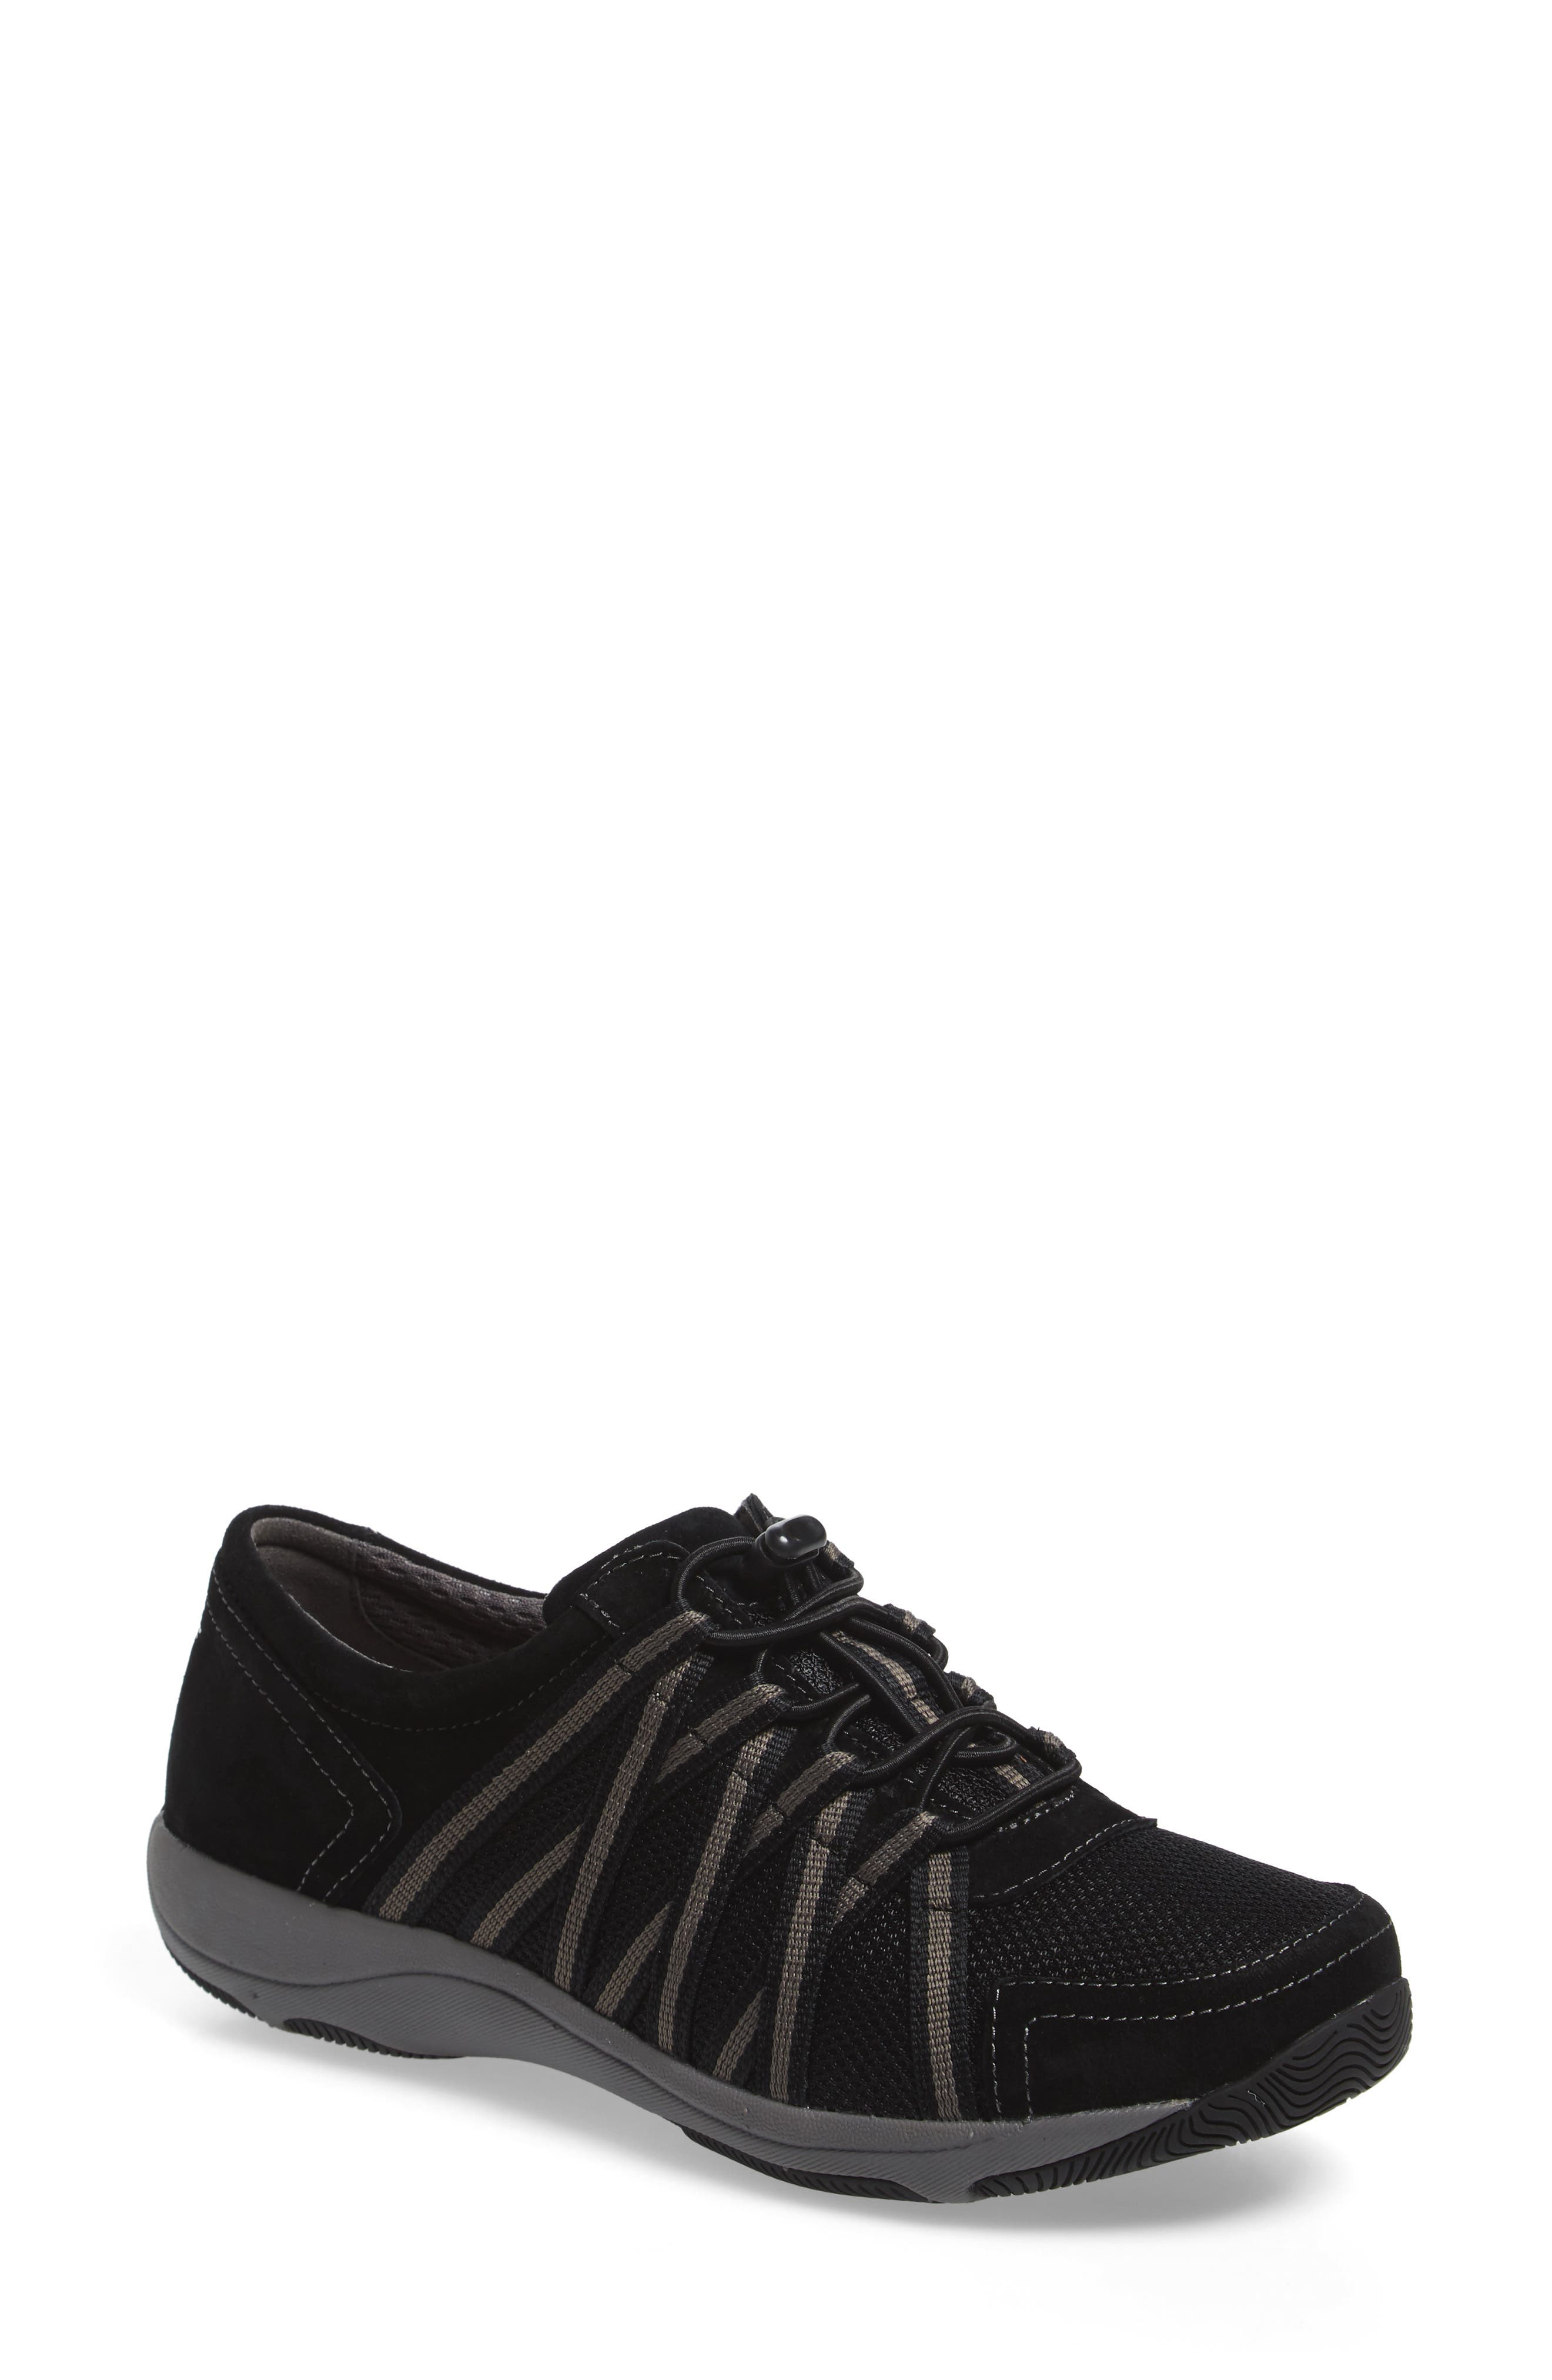 Halifax Collection Honor Sneaker,                         Main,                         color,